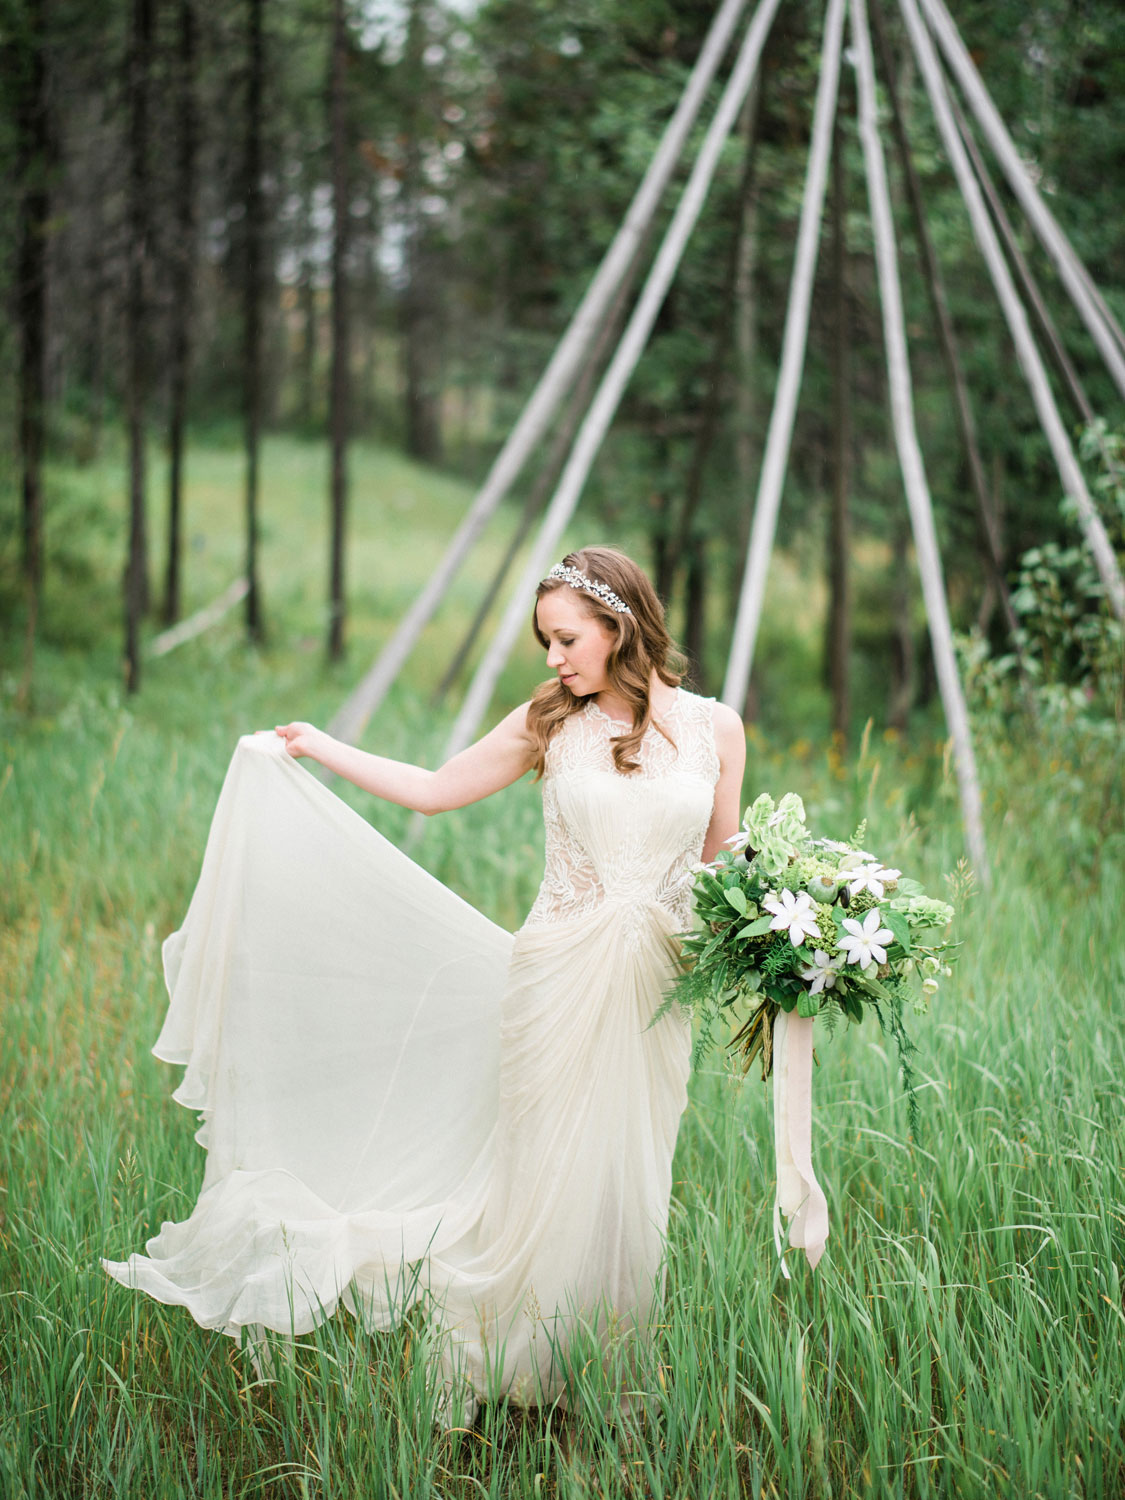 Montana wedding planning by Field Wedding Studio